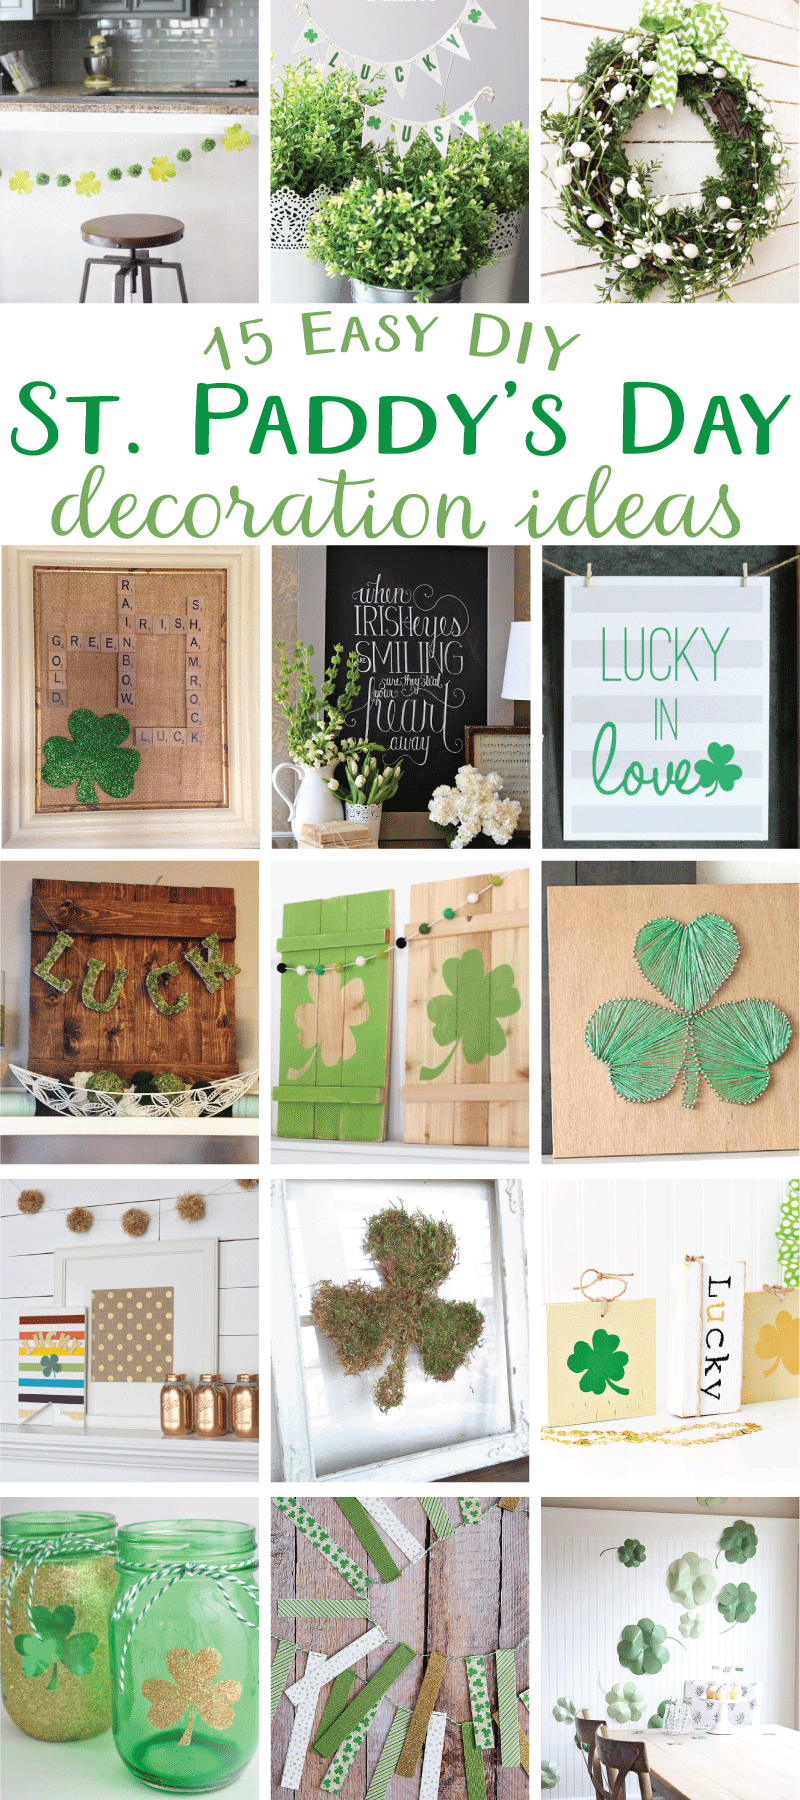 3 Easy Diy Storage Ideas For Small Kitchen: 15 Easy DIY St. Paddy's Day Decoration Ideas By Lindi Haws